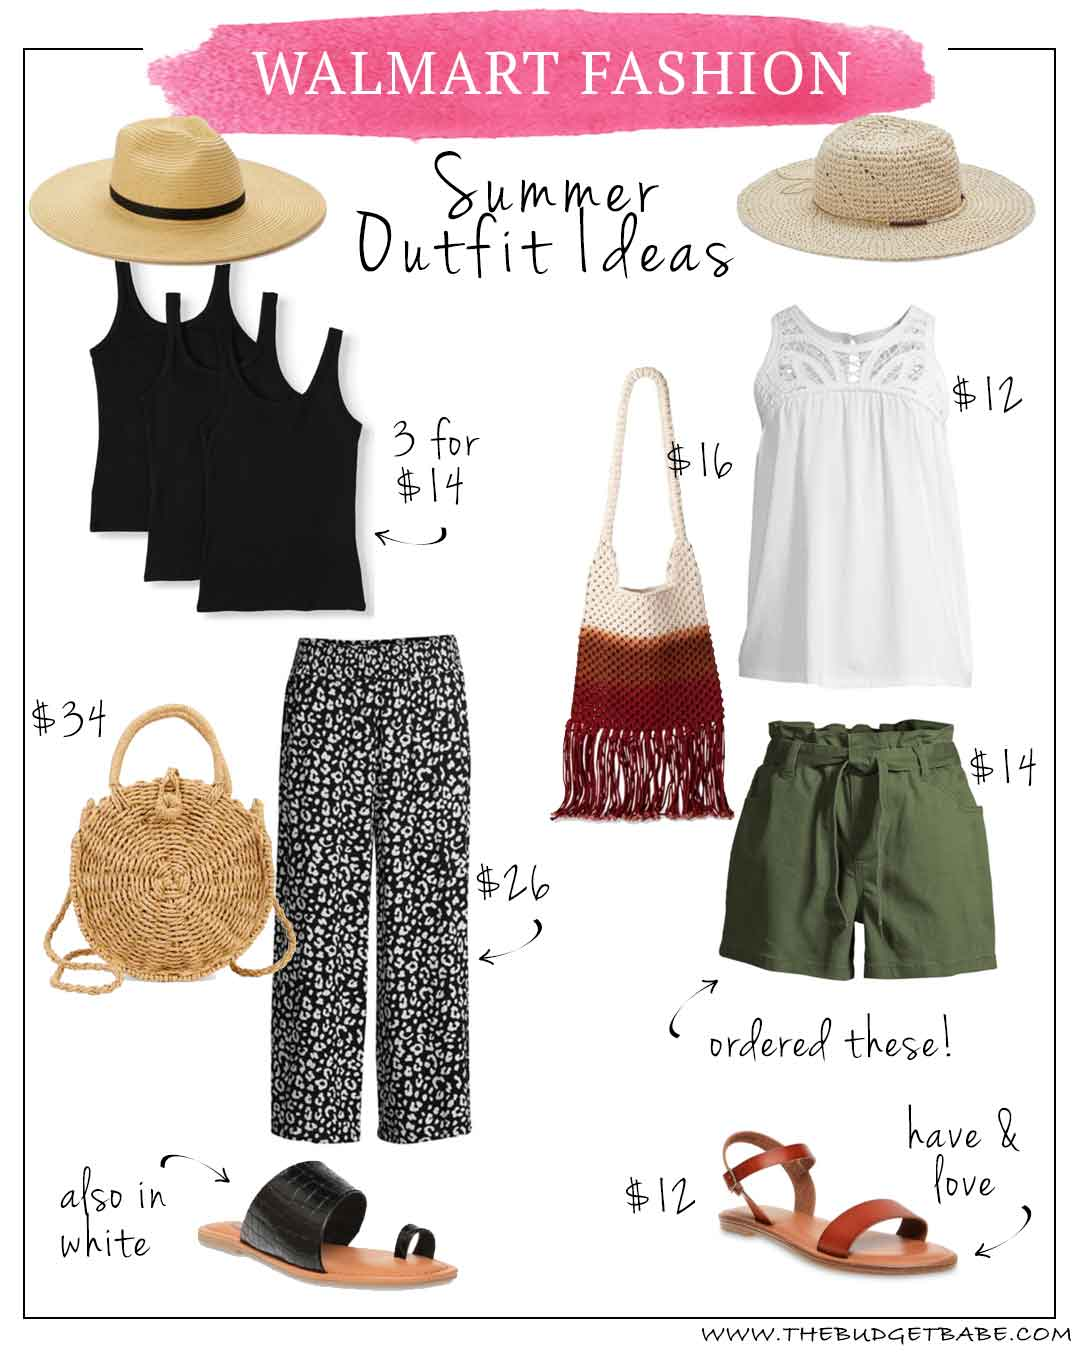 Walmart Fashion Summer Outfit Ideas for Women, Moms, Teachers Instagram Fashion Blog